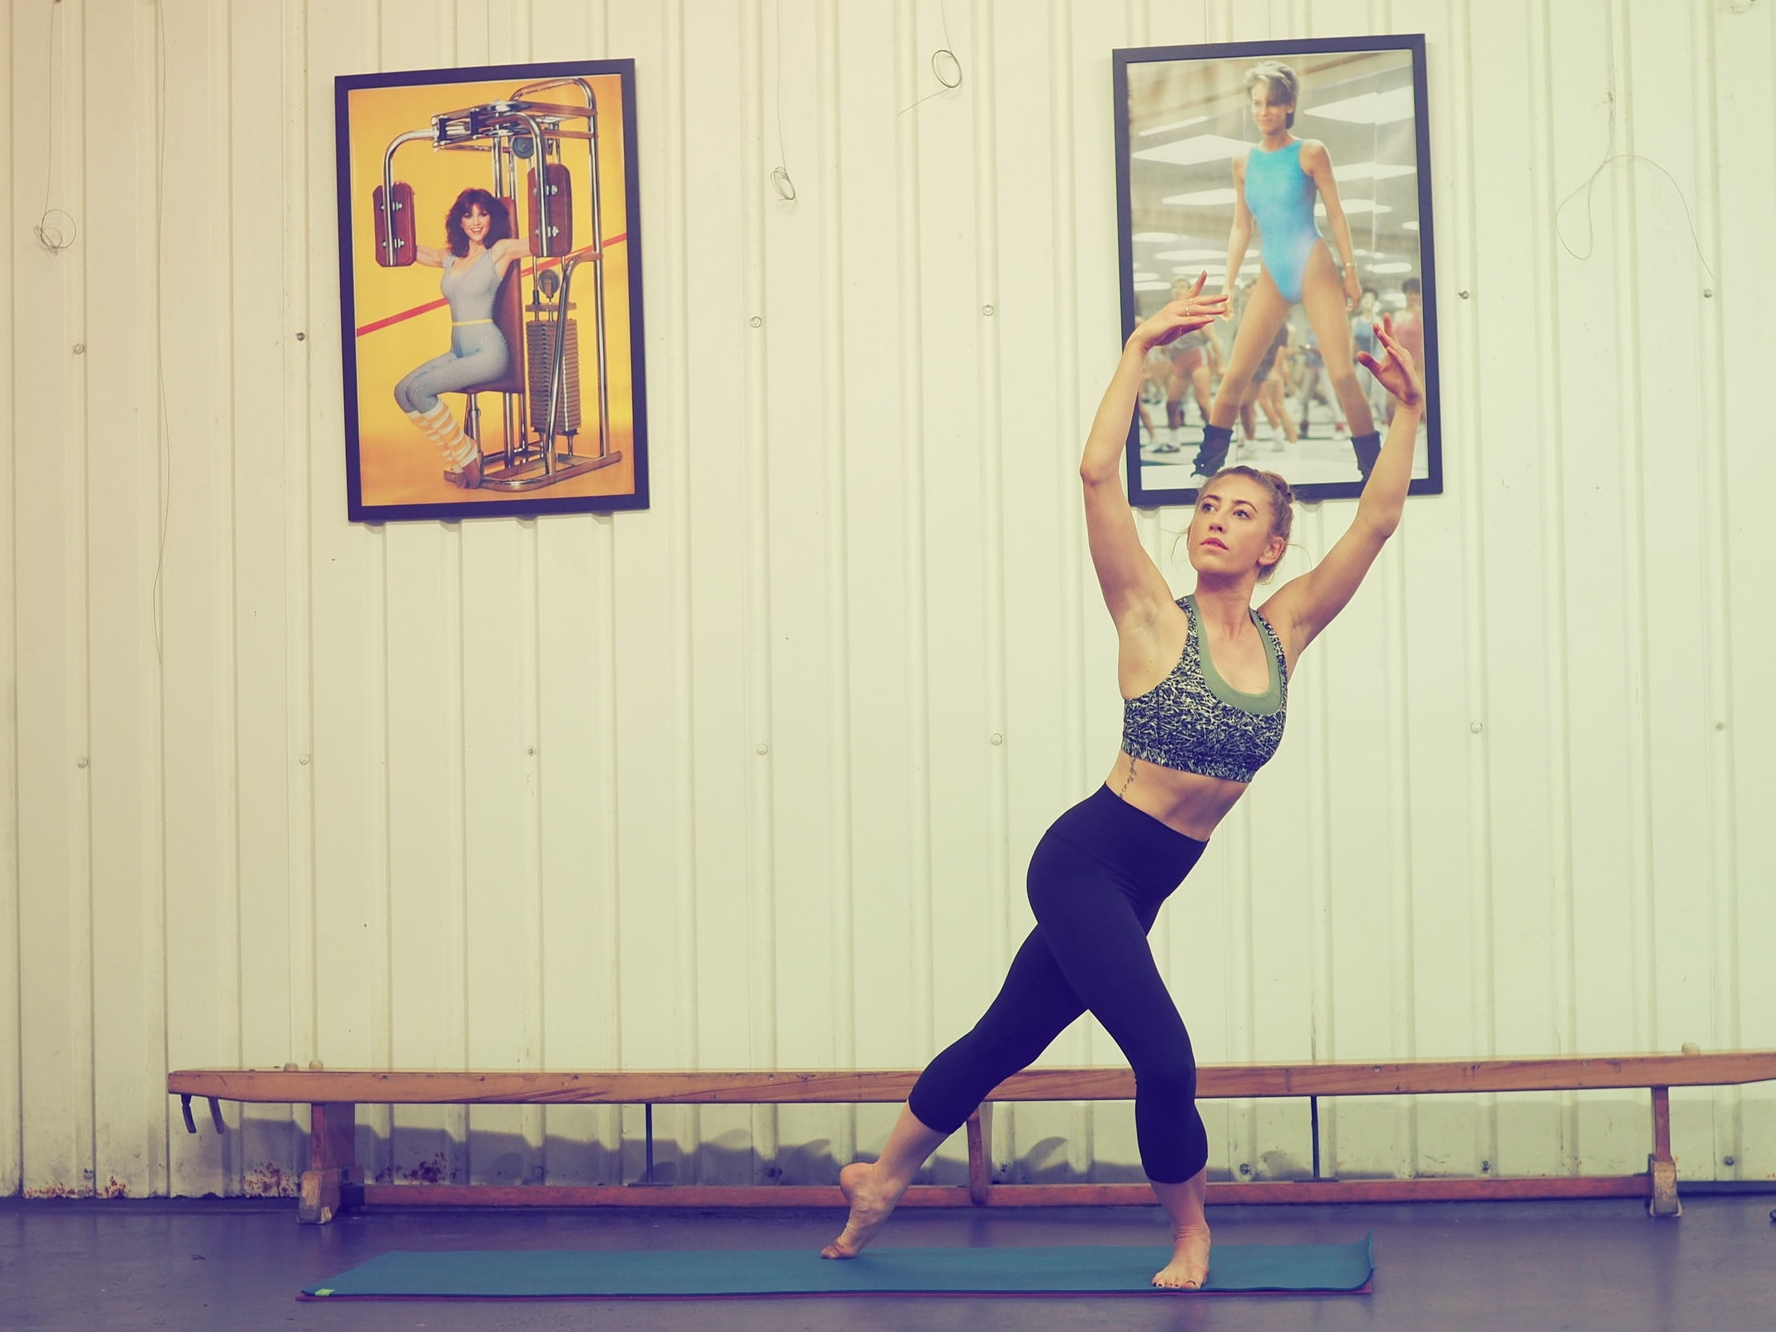 BalletFit - Envious of Misty Copelands exquisite physique? Blast out some ballet inspired exercises to tone up and break a sweat.8am Wednesdays w/Luna (30 mins) £6 Drop-in, included in the Class Pass.